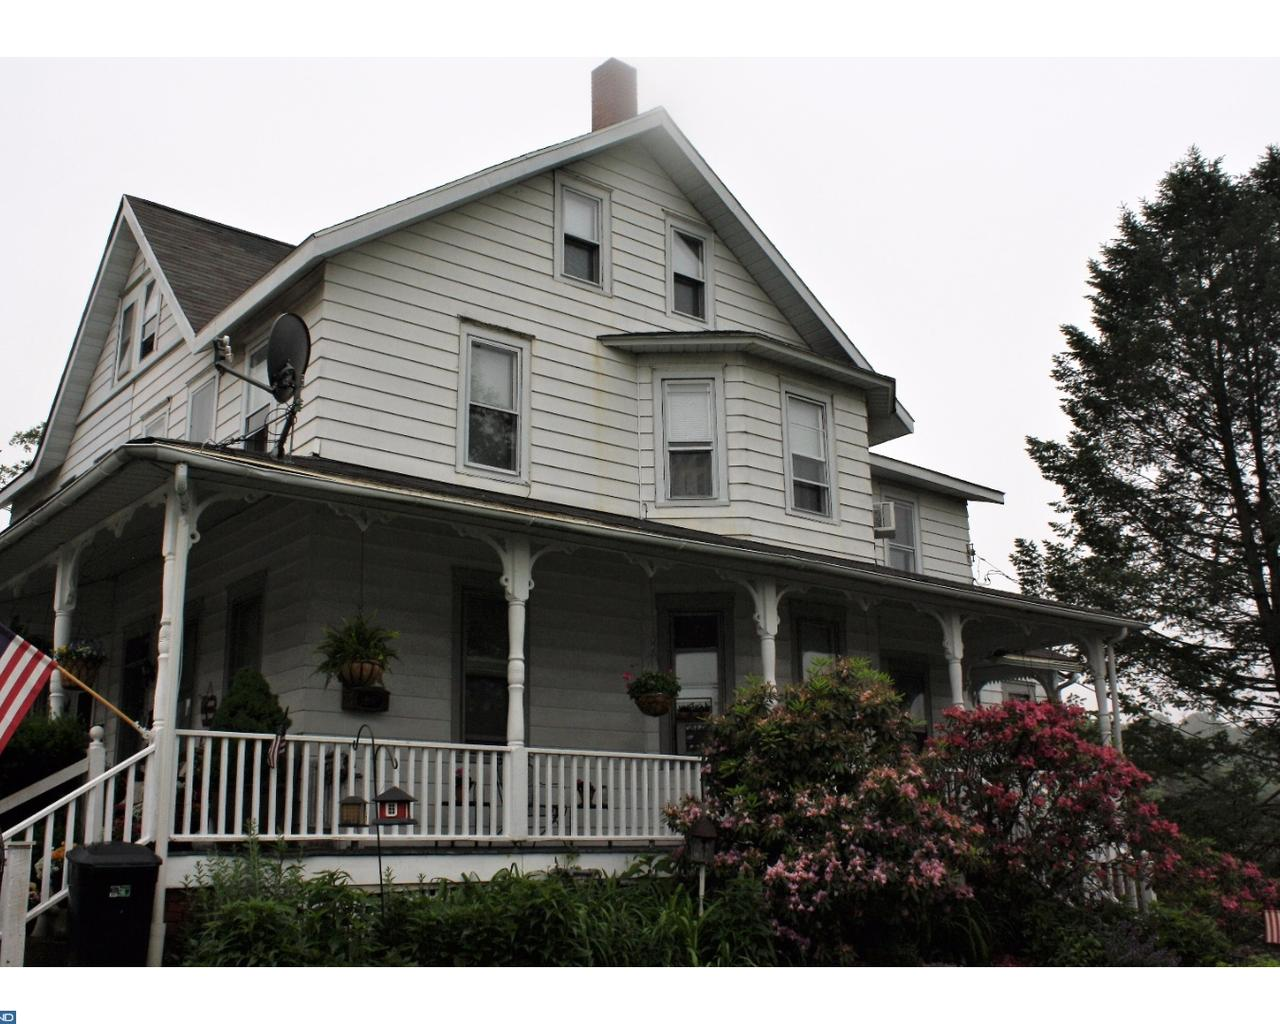 Property for sale at 441 W 2ND AVE, Parkesburg,  PA 19365